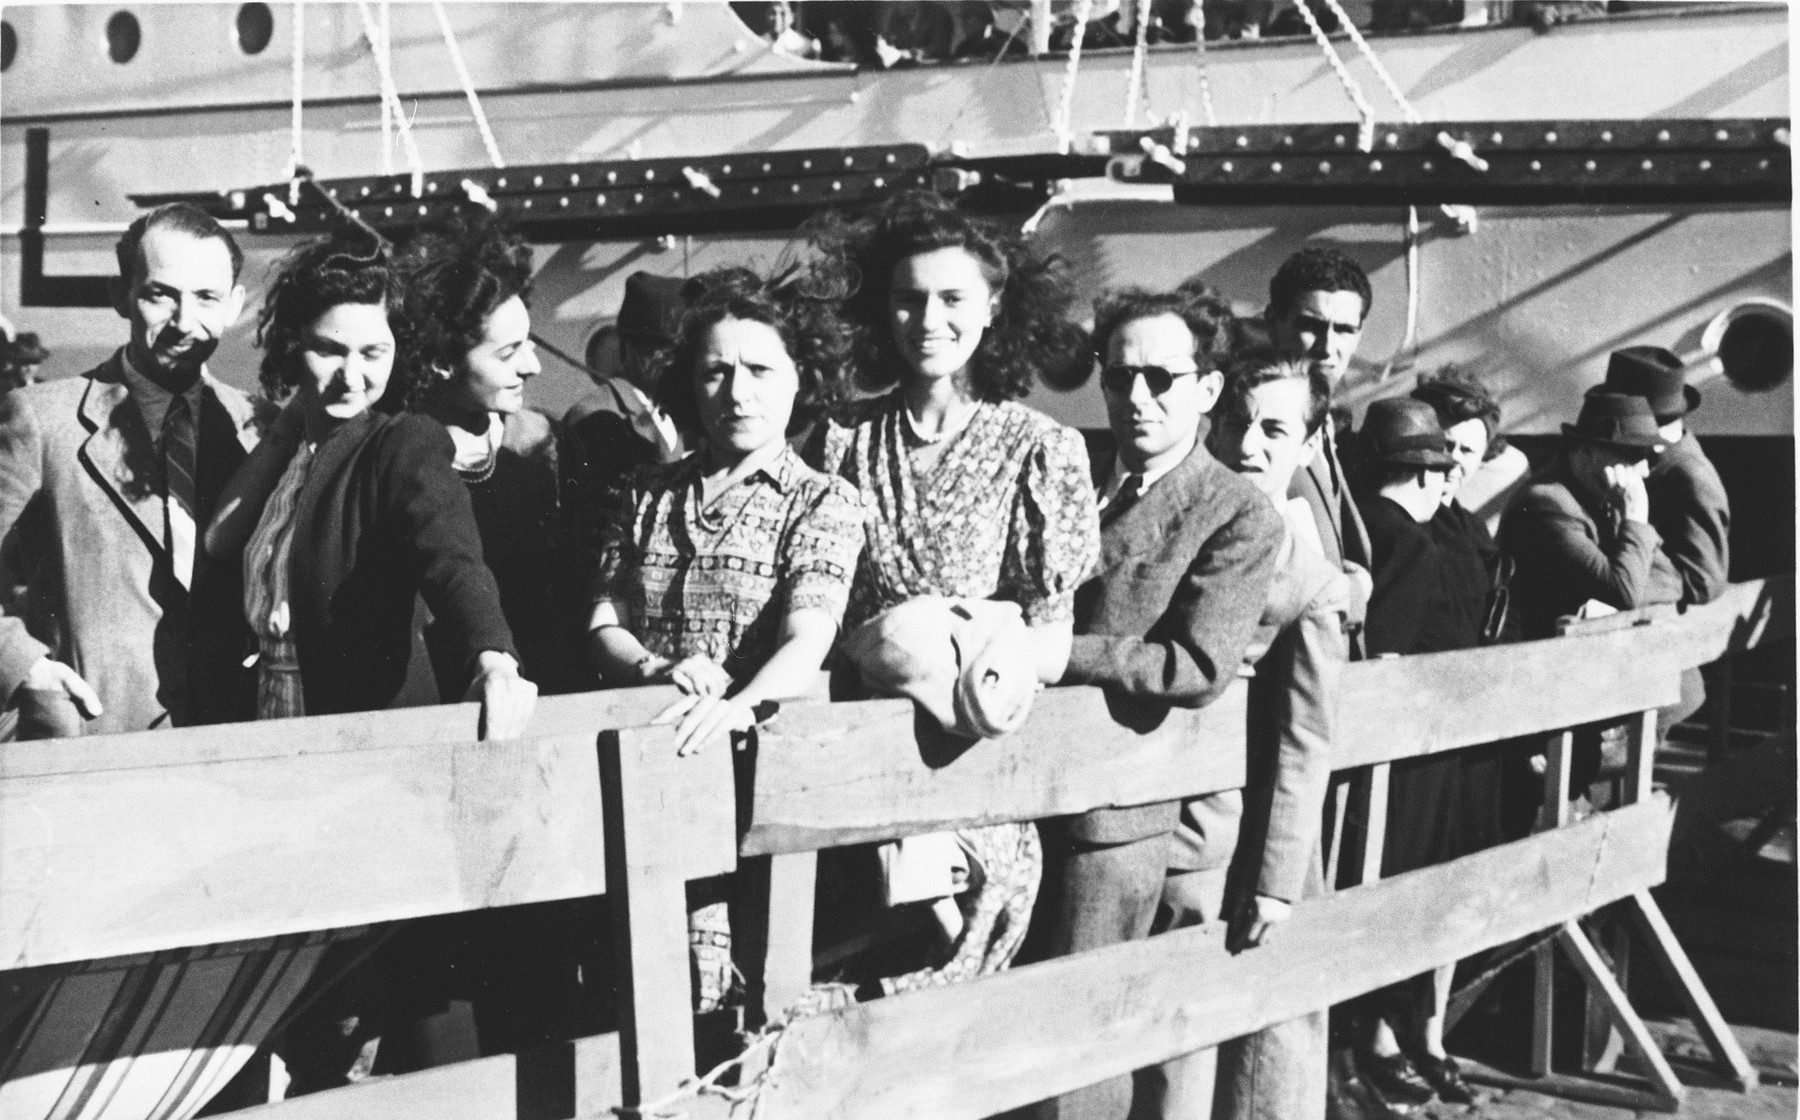 A group of Jewish refugees wait behind a wooden fence in the port of Lisbon before boarding the SS Mouzinho.